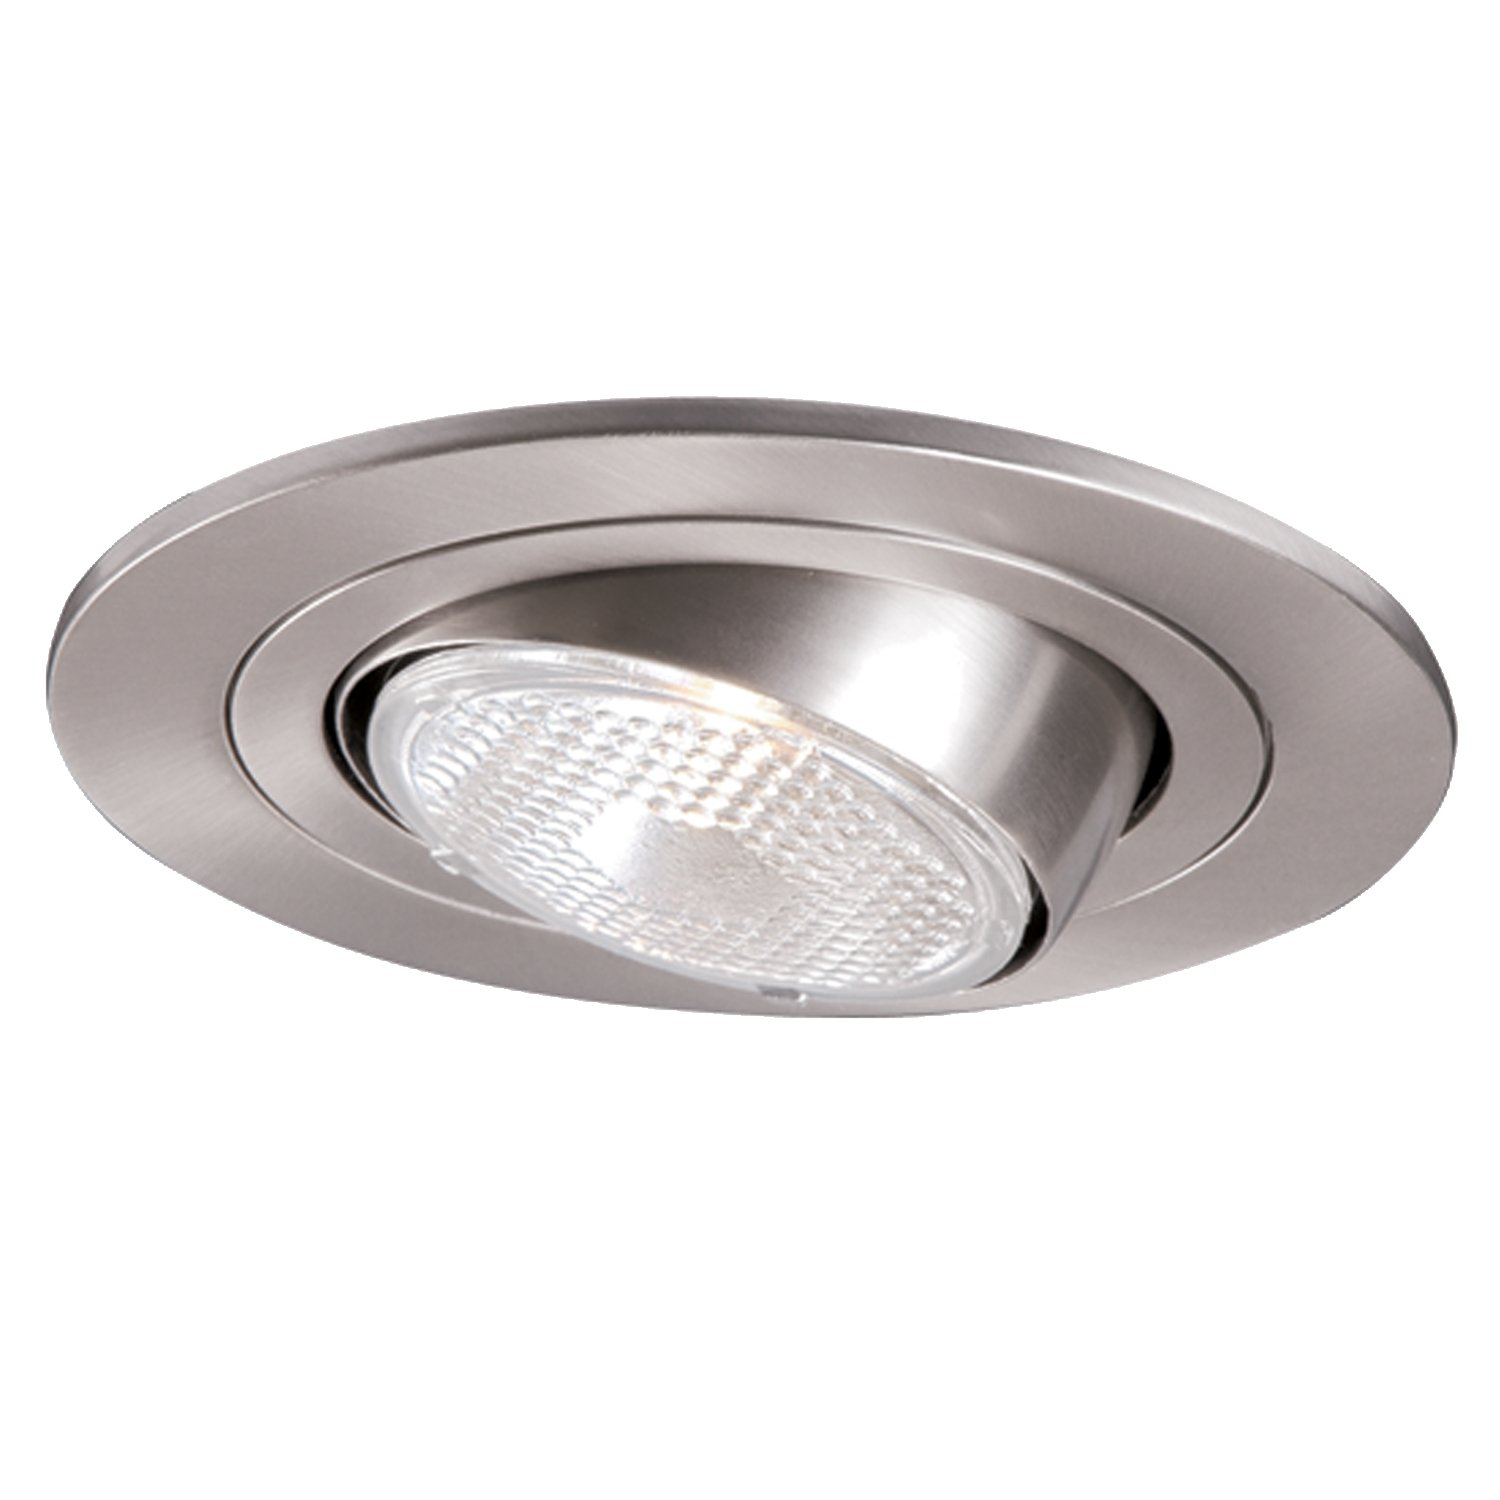 Amazon halo recessed 996p 4 inch trim par20 lamp with white amazon halo recessed 996p 4 inch trim par20 lamp with white eyeball white home improvement mozeypictures Gallery